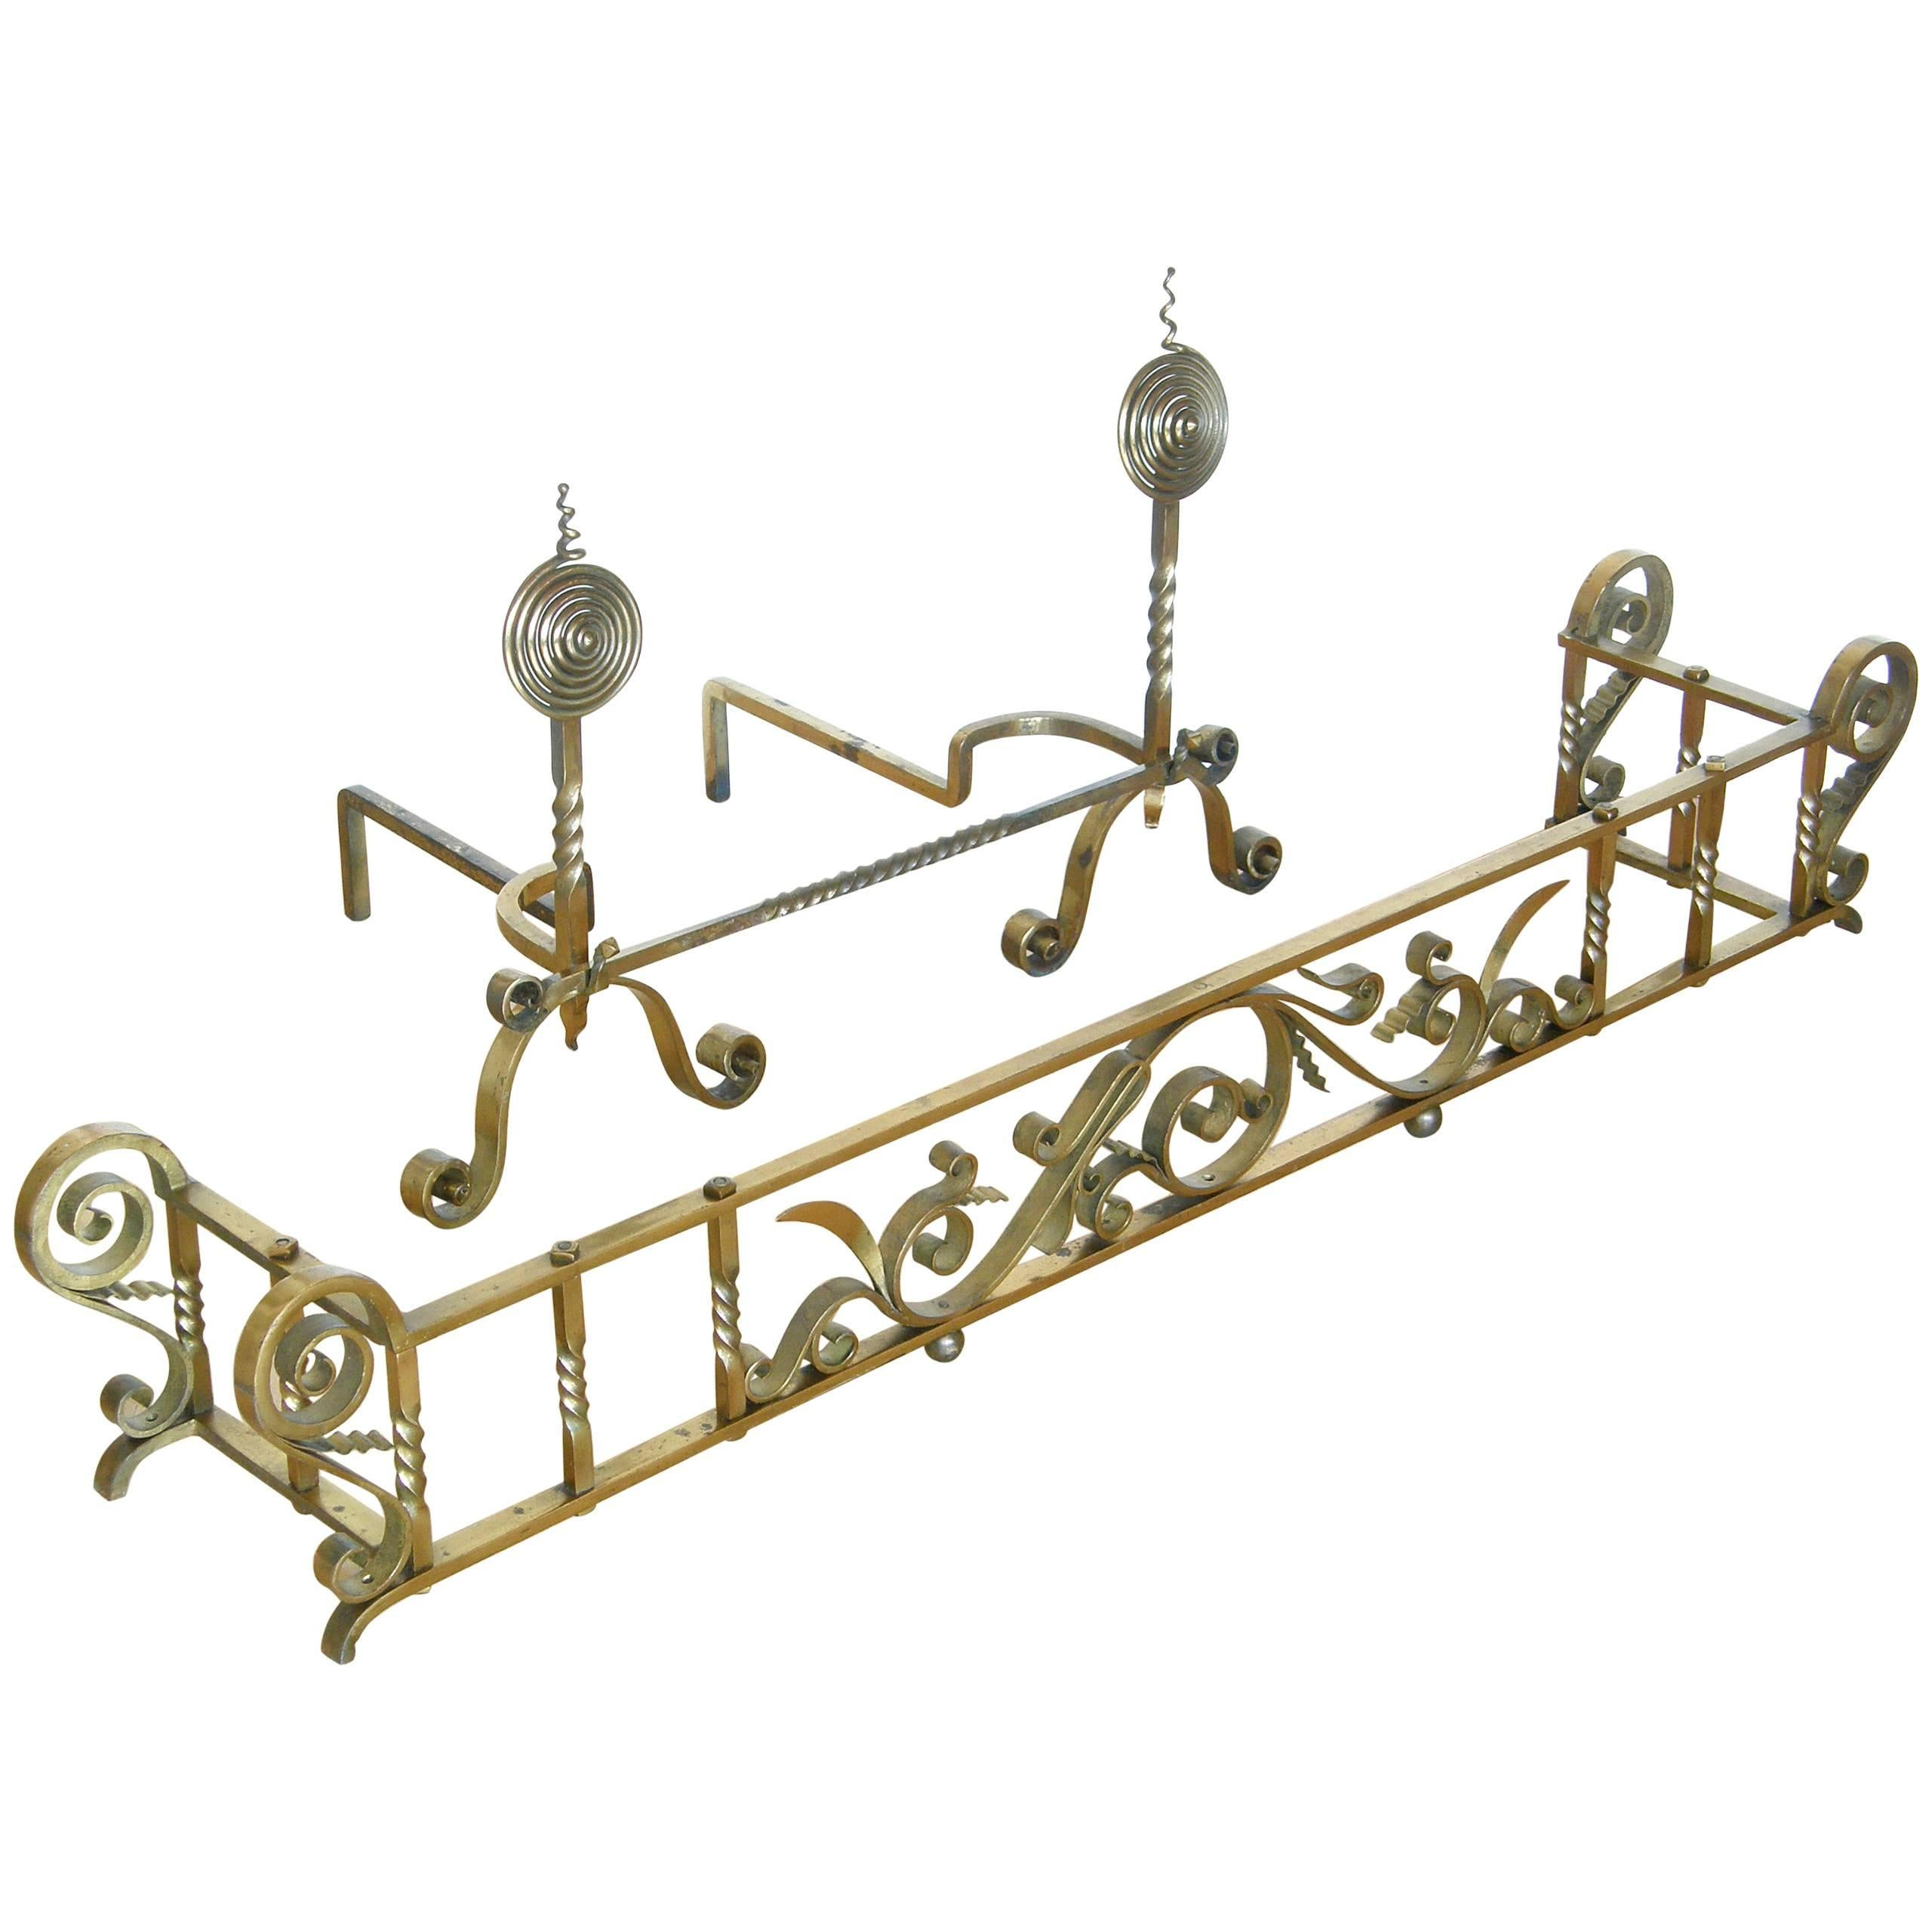 Brass Plated Hand-Wrought Iron Andirons and Fireplace Fender